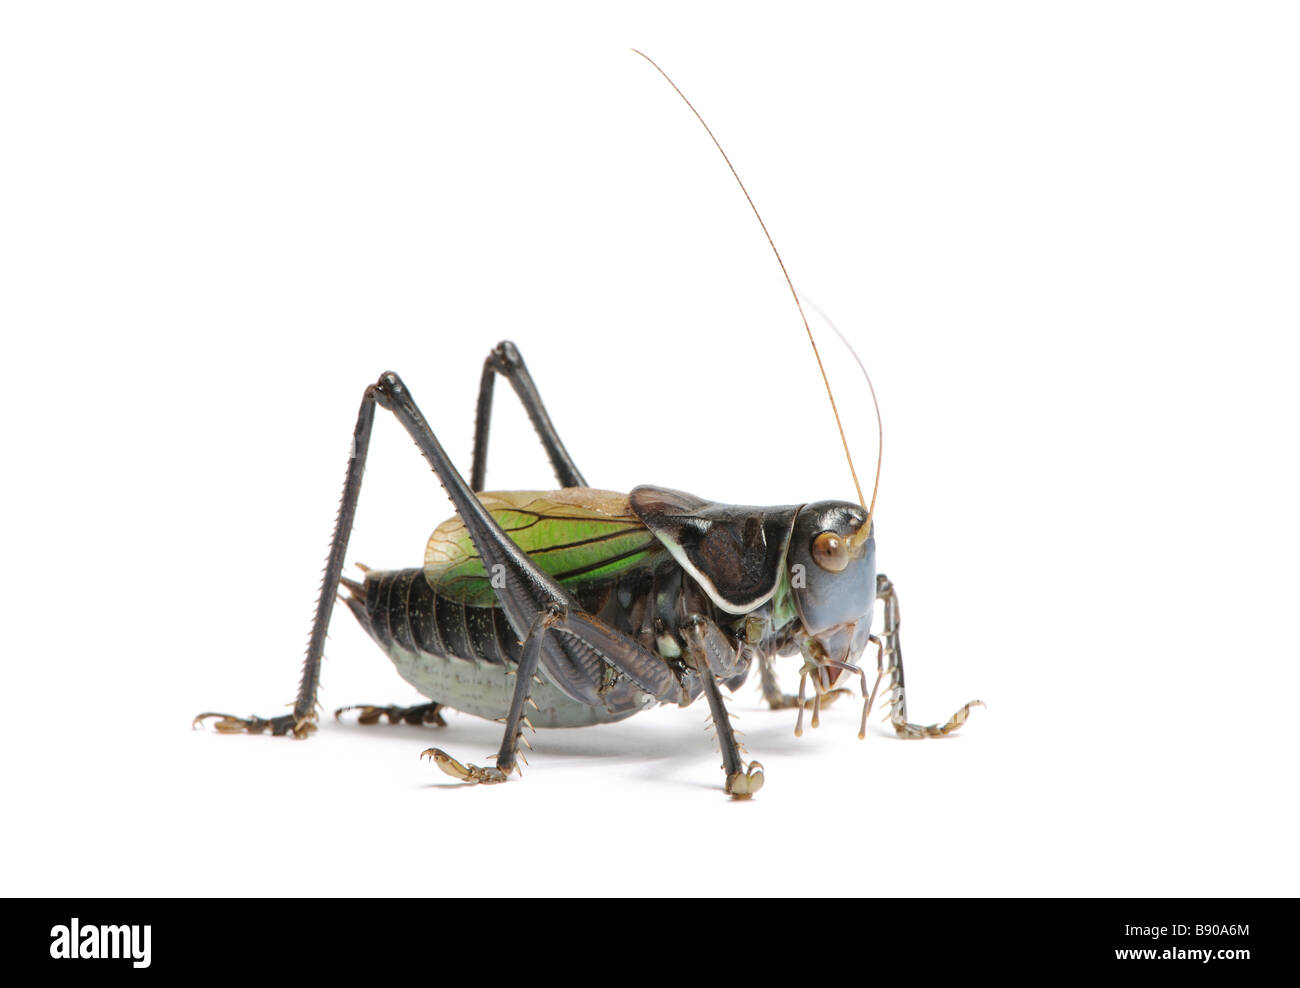 Grasshopper Gampsocleis gratiosa in front of a white background - Stock Image